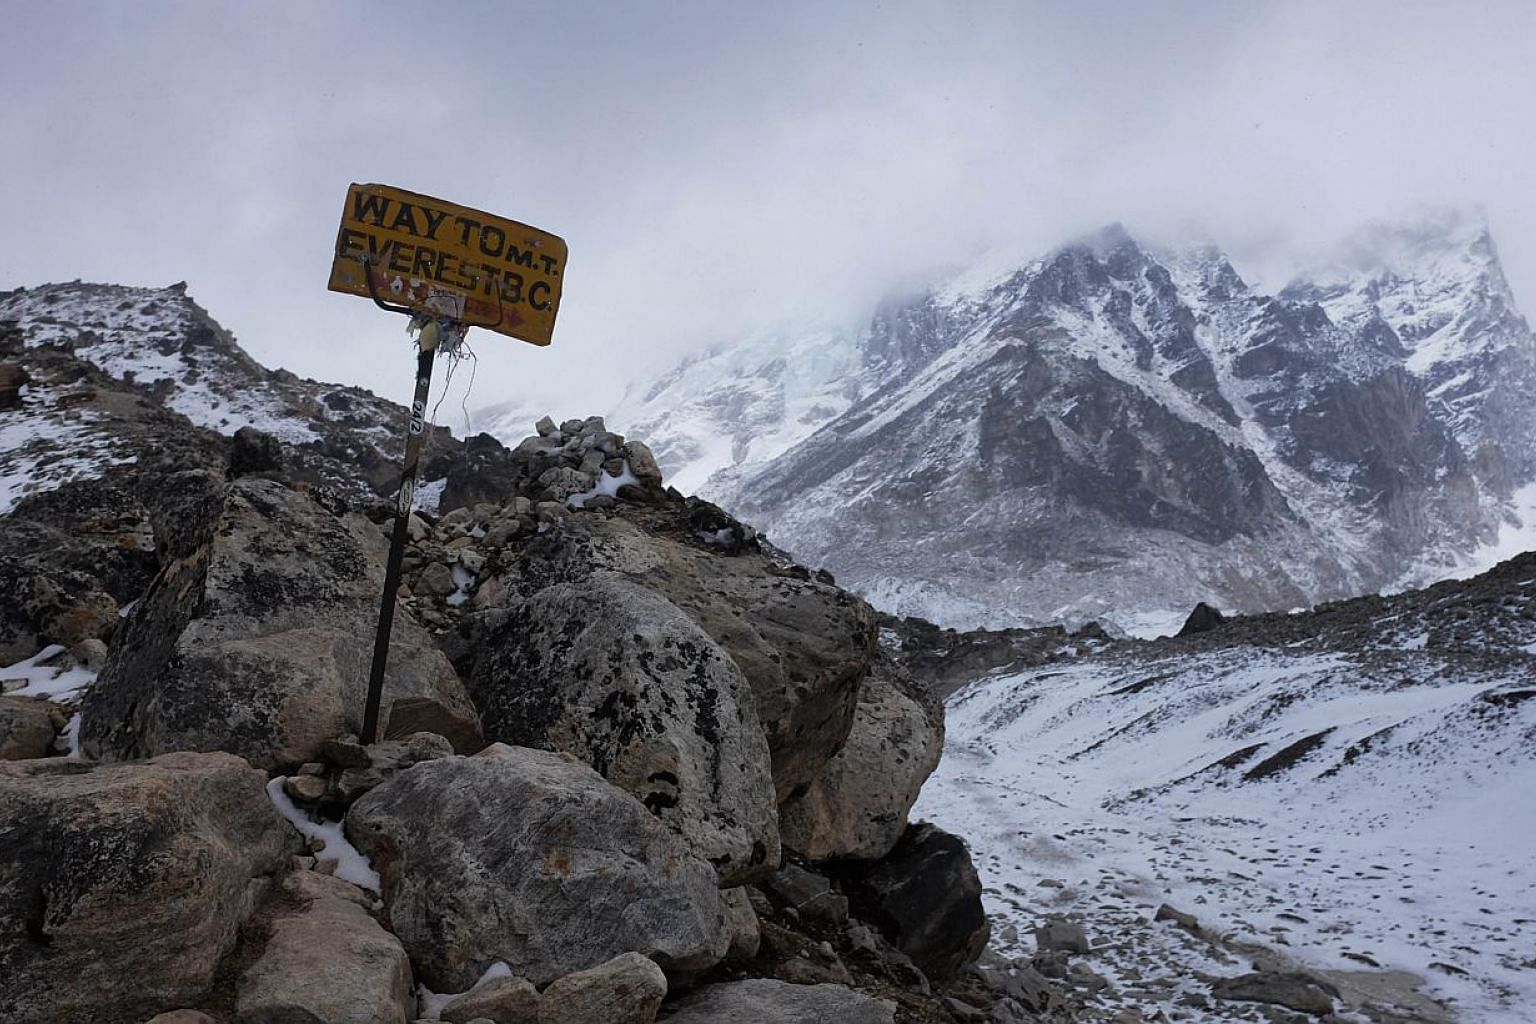 A sign showing the way to Everest Base Camp high in the Khumb Glacier stands among rocks on April 26, 2015, one day after an earthquake triggered avalanche swept through parts of the base camp killing scores of people. -- PHOTO: AFP